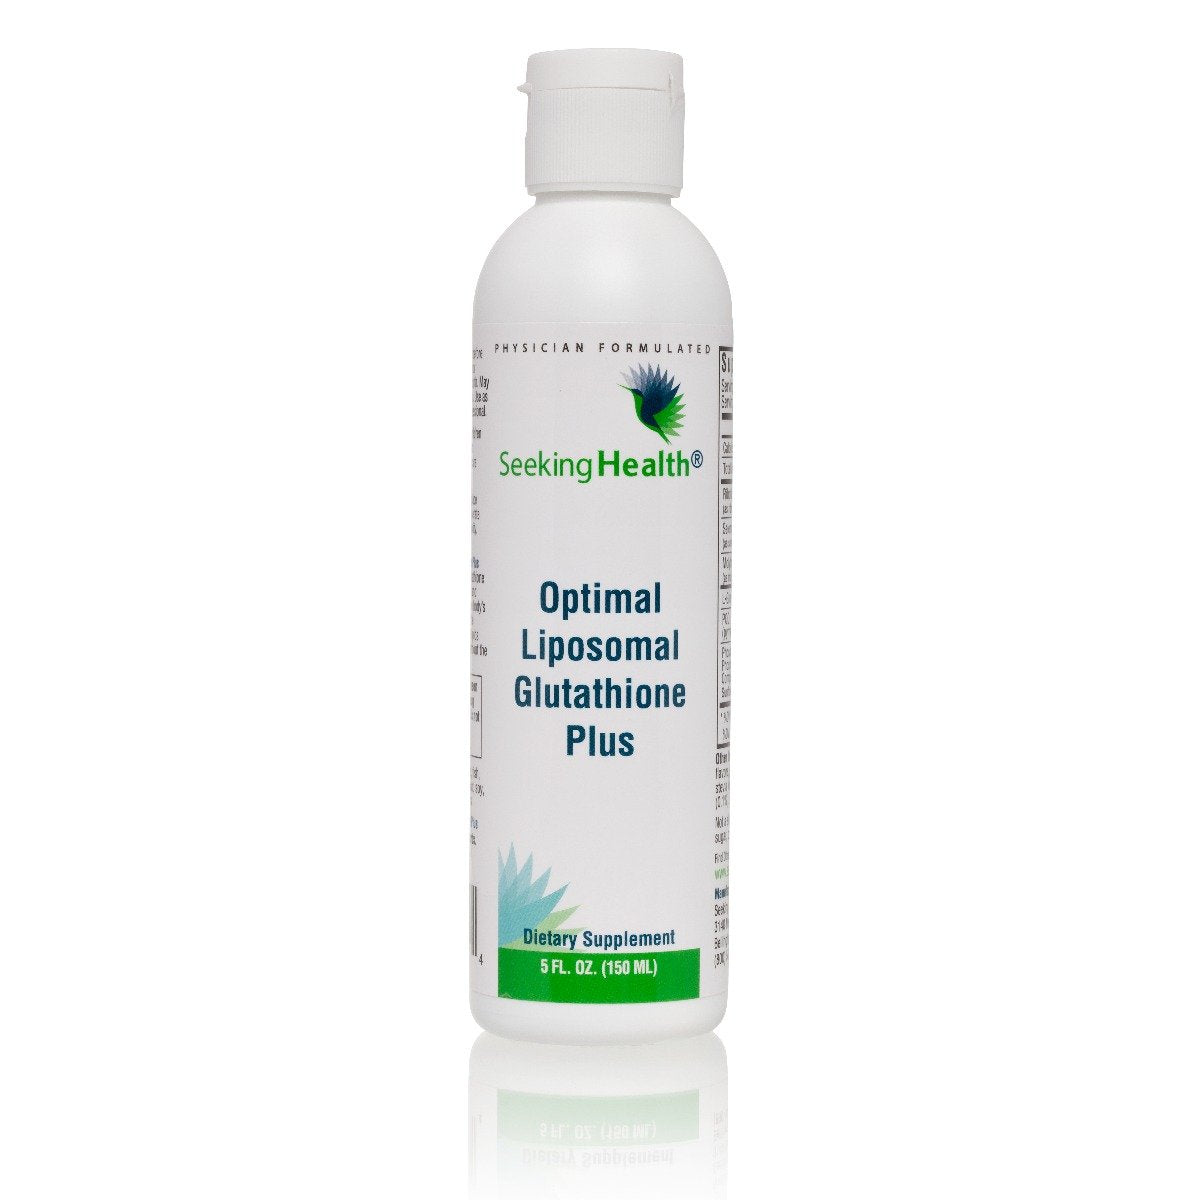 Optimal Liposomal Glutathione Plus 150ml